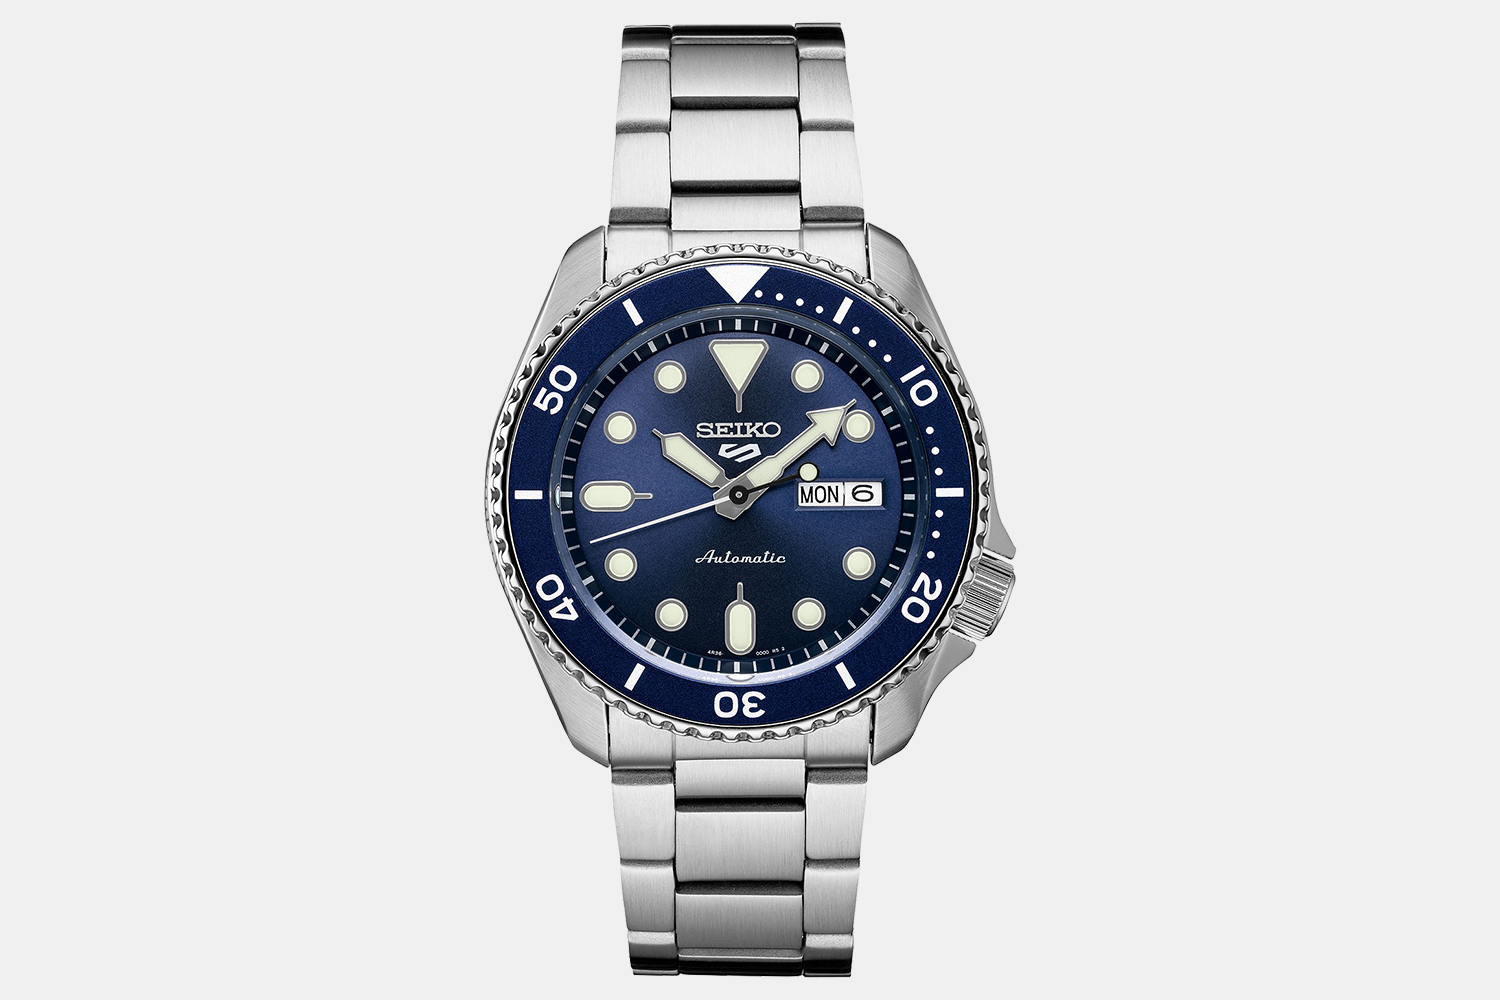 Seiko Automatic 5 Sports Watch With Stainless Steel Bracelet